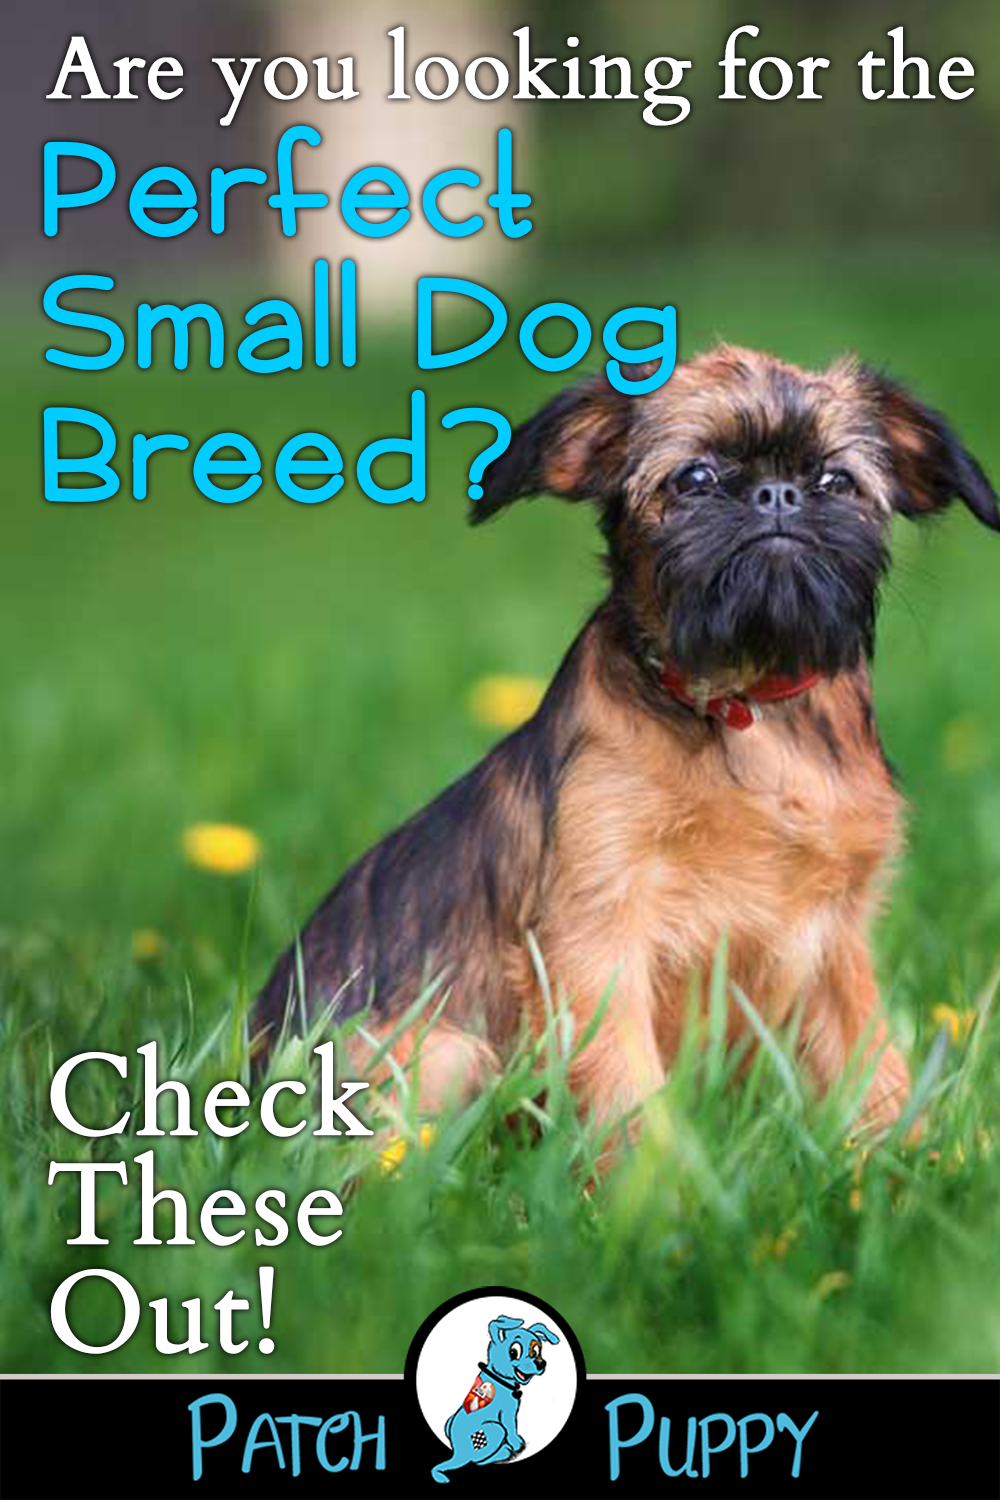 12 Dog Breeds That Are Small With Pictures Dog Breeds Small Dog Breeds Long Haired Dog Breeds